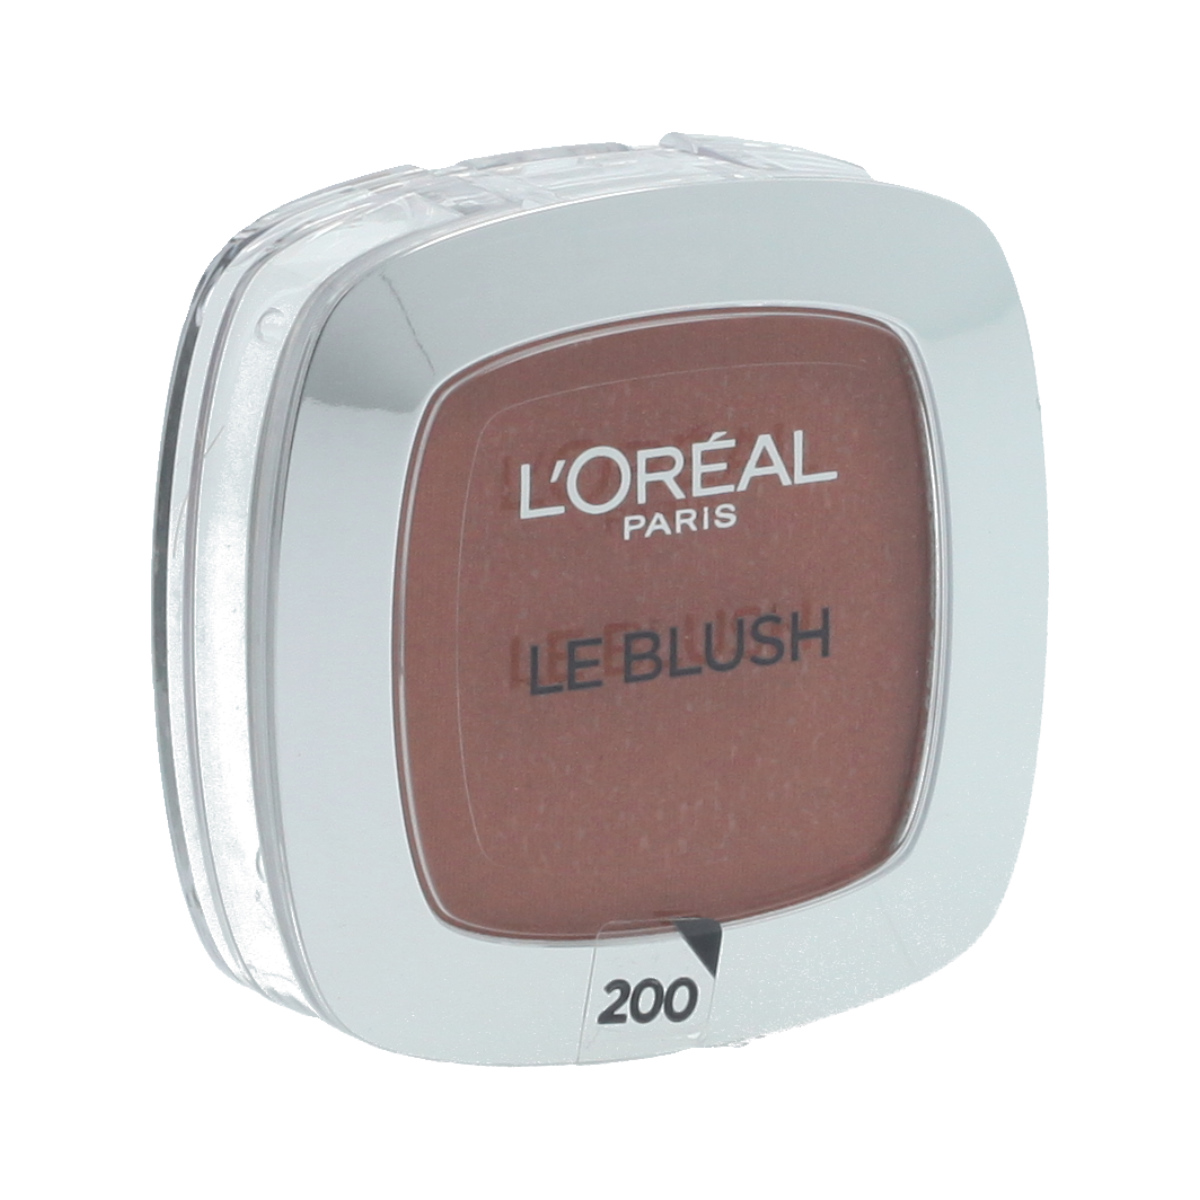 L'Oréal Paris Le Blush (200 Golden Amber) 5 g 90414